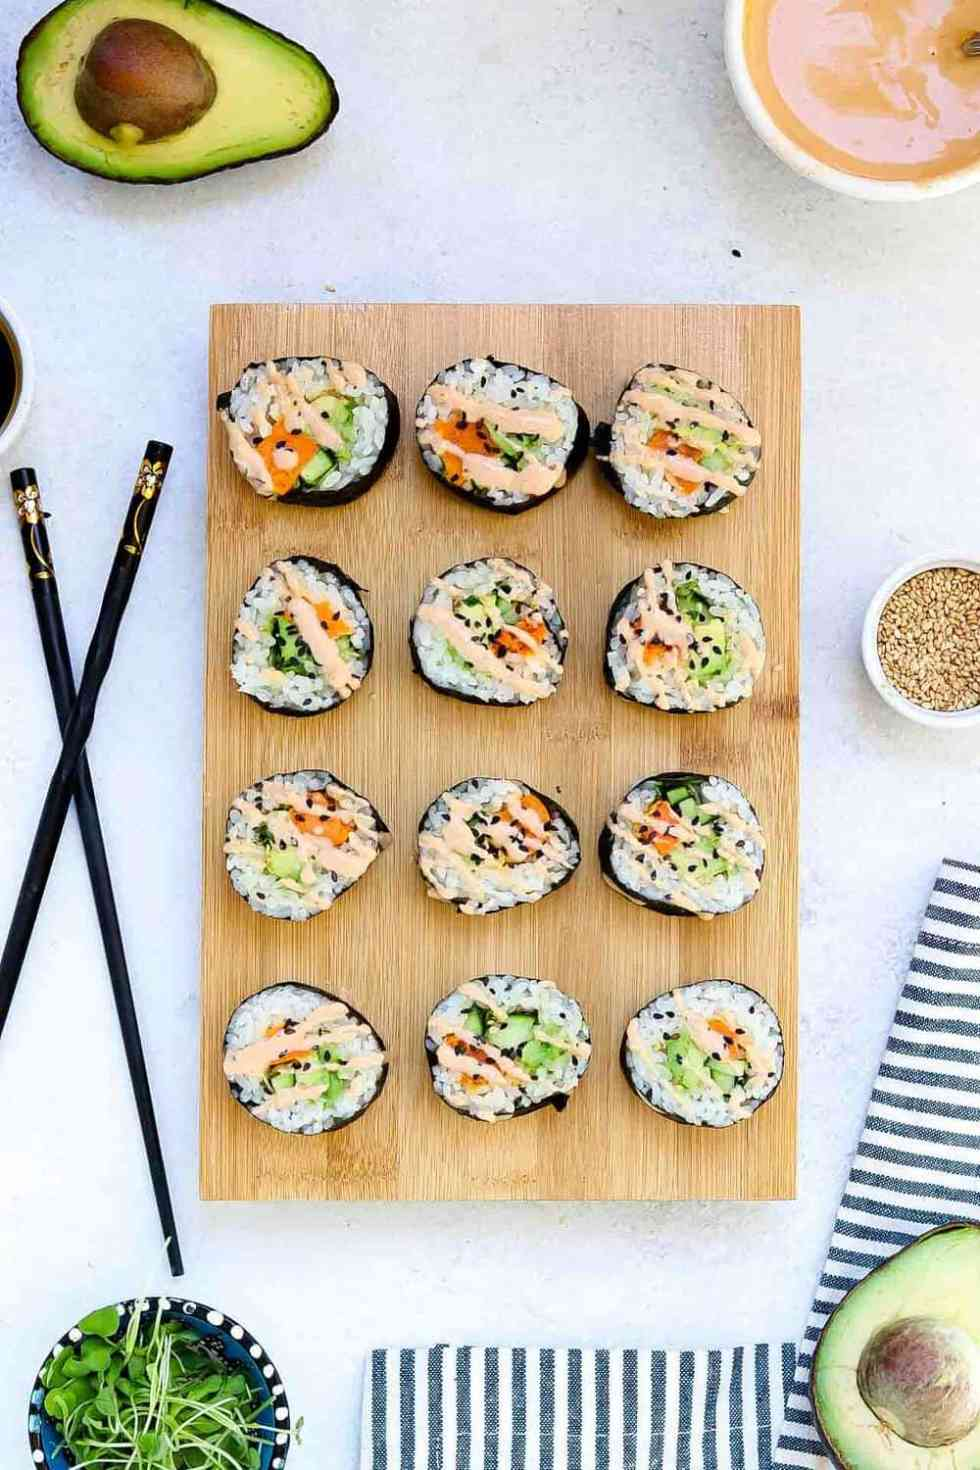 12 sushi rolls lined up on a wooden board with black chopsticks and a tahini drizzle.